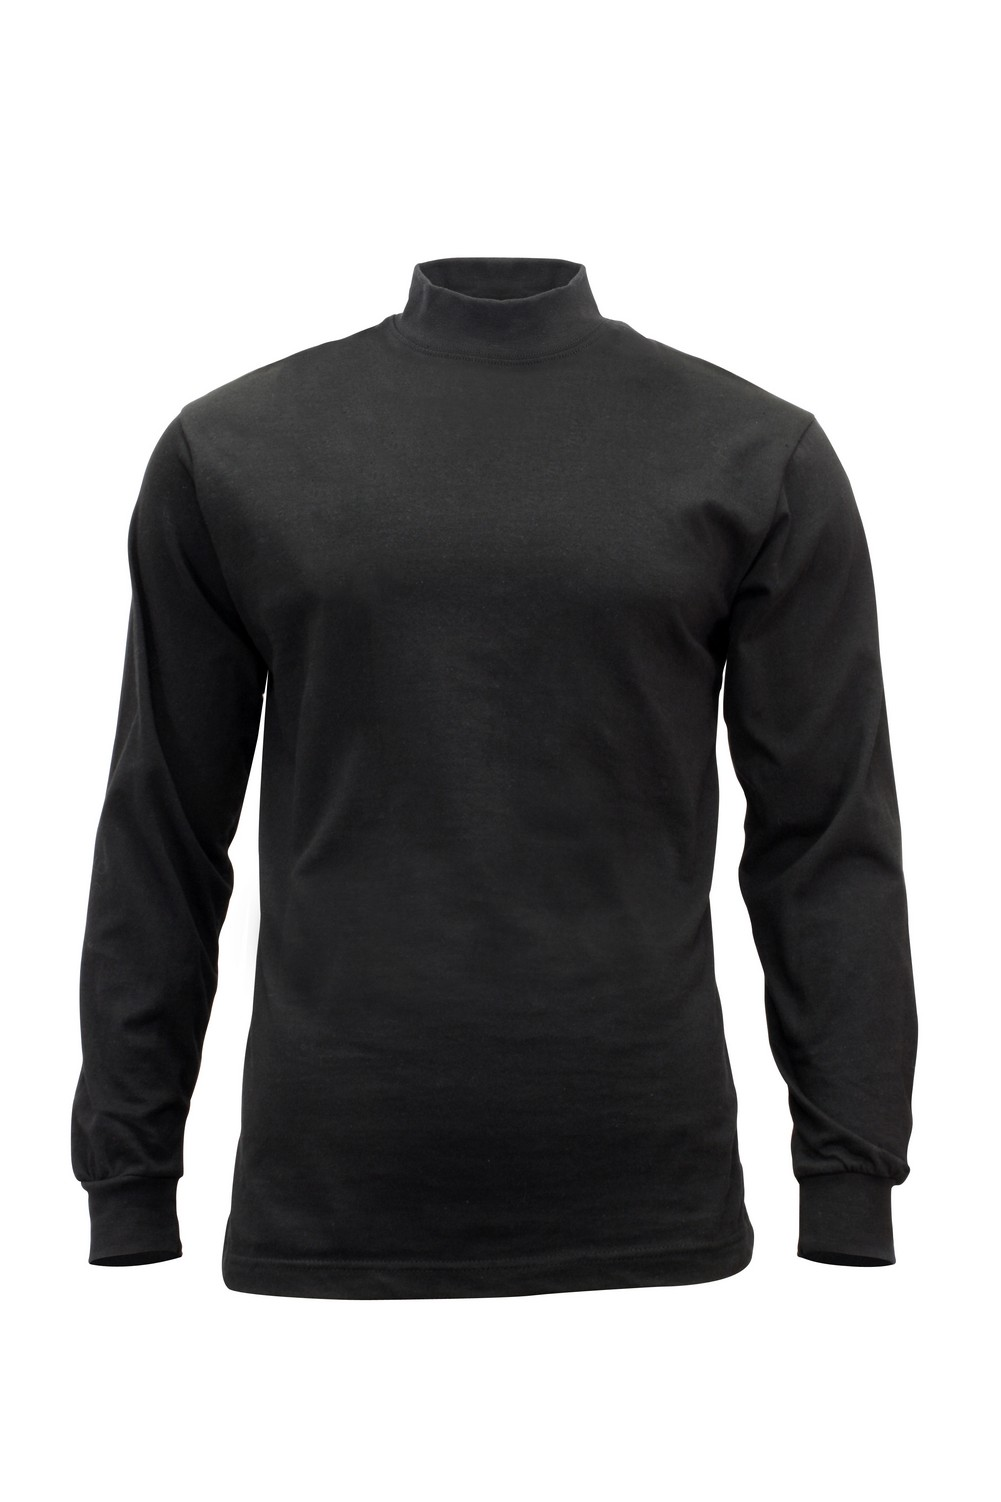 Rothco Mens T-Shirt - Long Sleeve Solid Mock Turtleneck, Black by Rothco at Sears.com